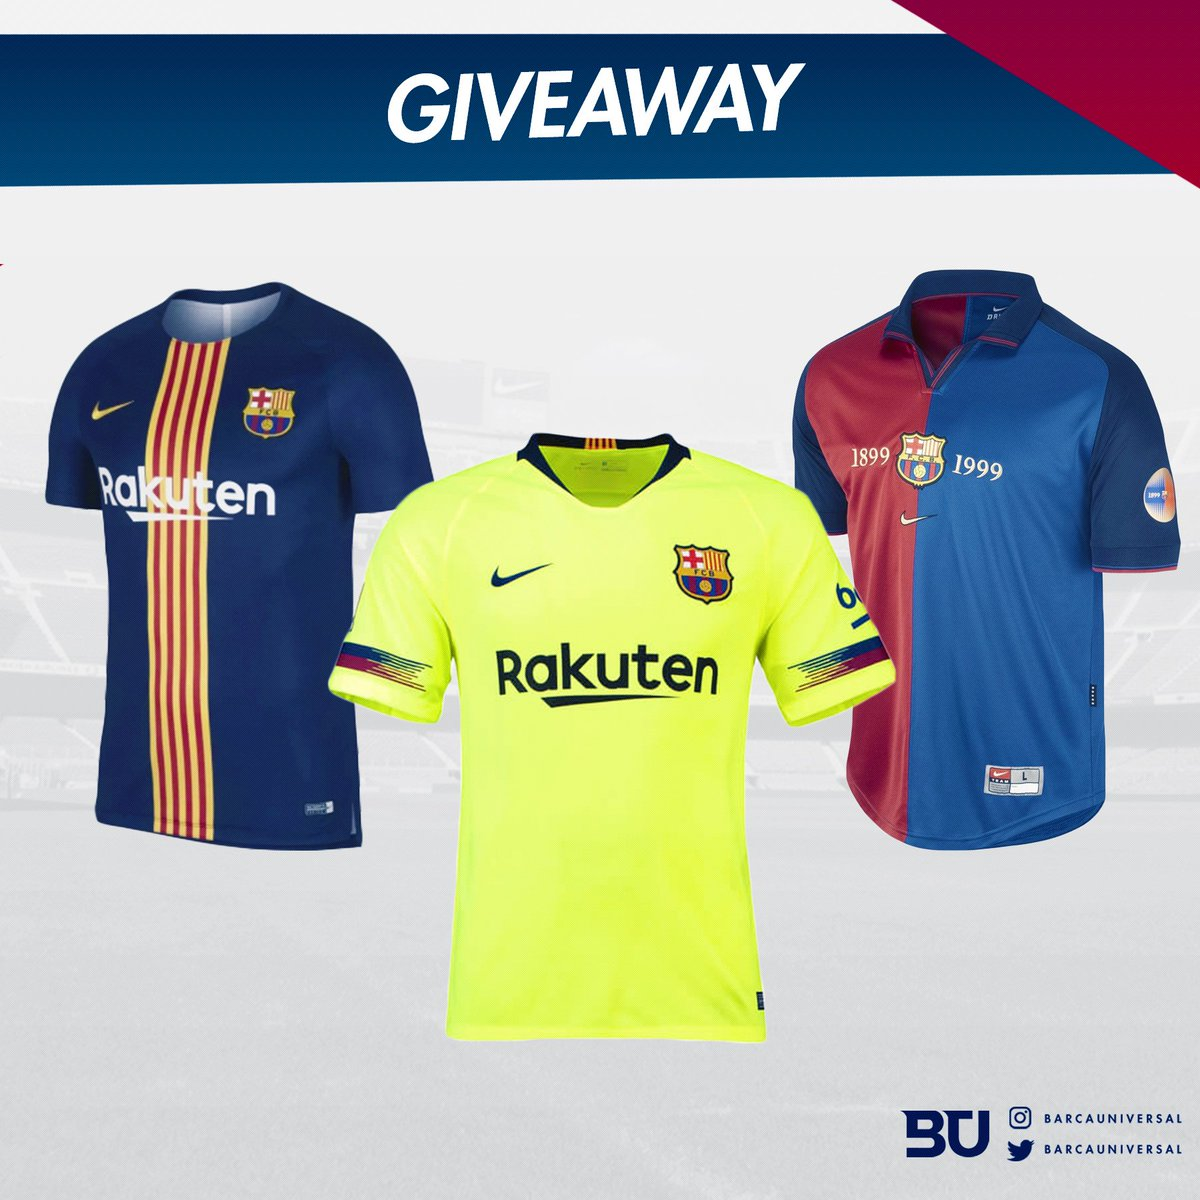 cheap for discount 4bc18 2891c Barça Universal on Twitter: